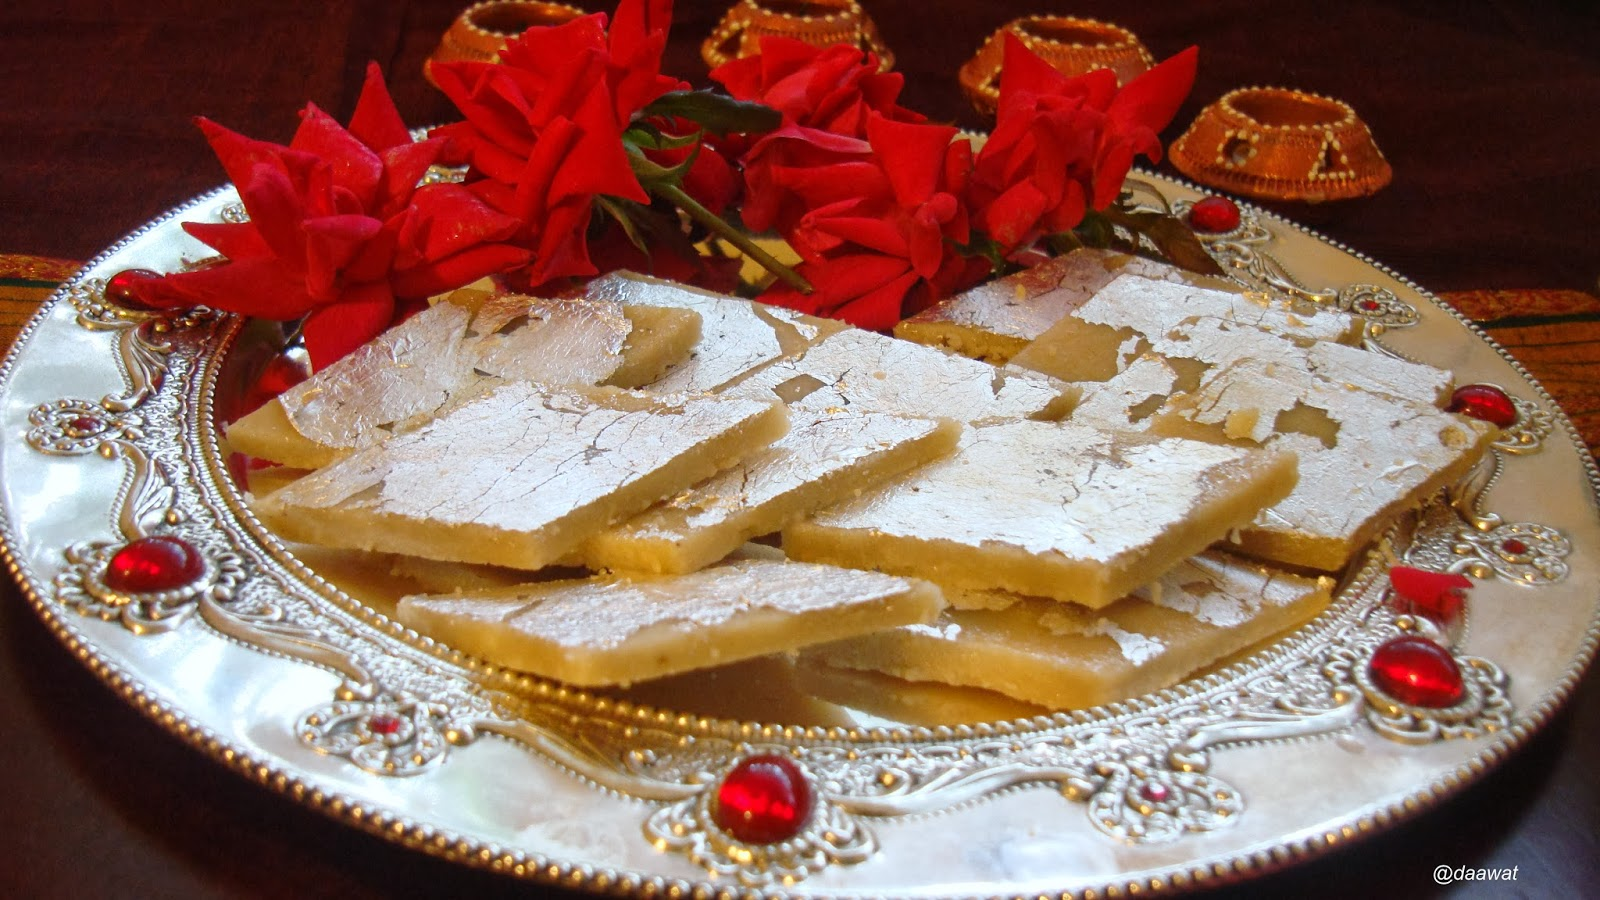 Aapka Daawat : Kaju ki Barfi / Indian Diwali Sweet Recipe